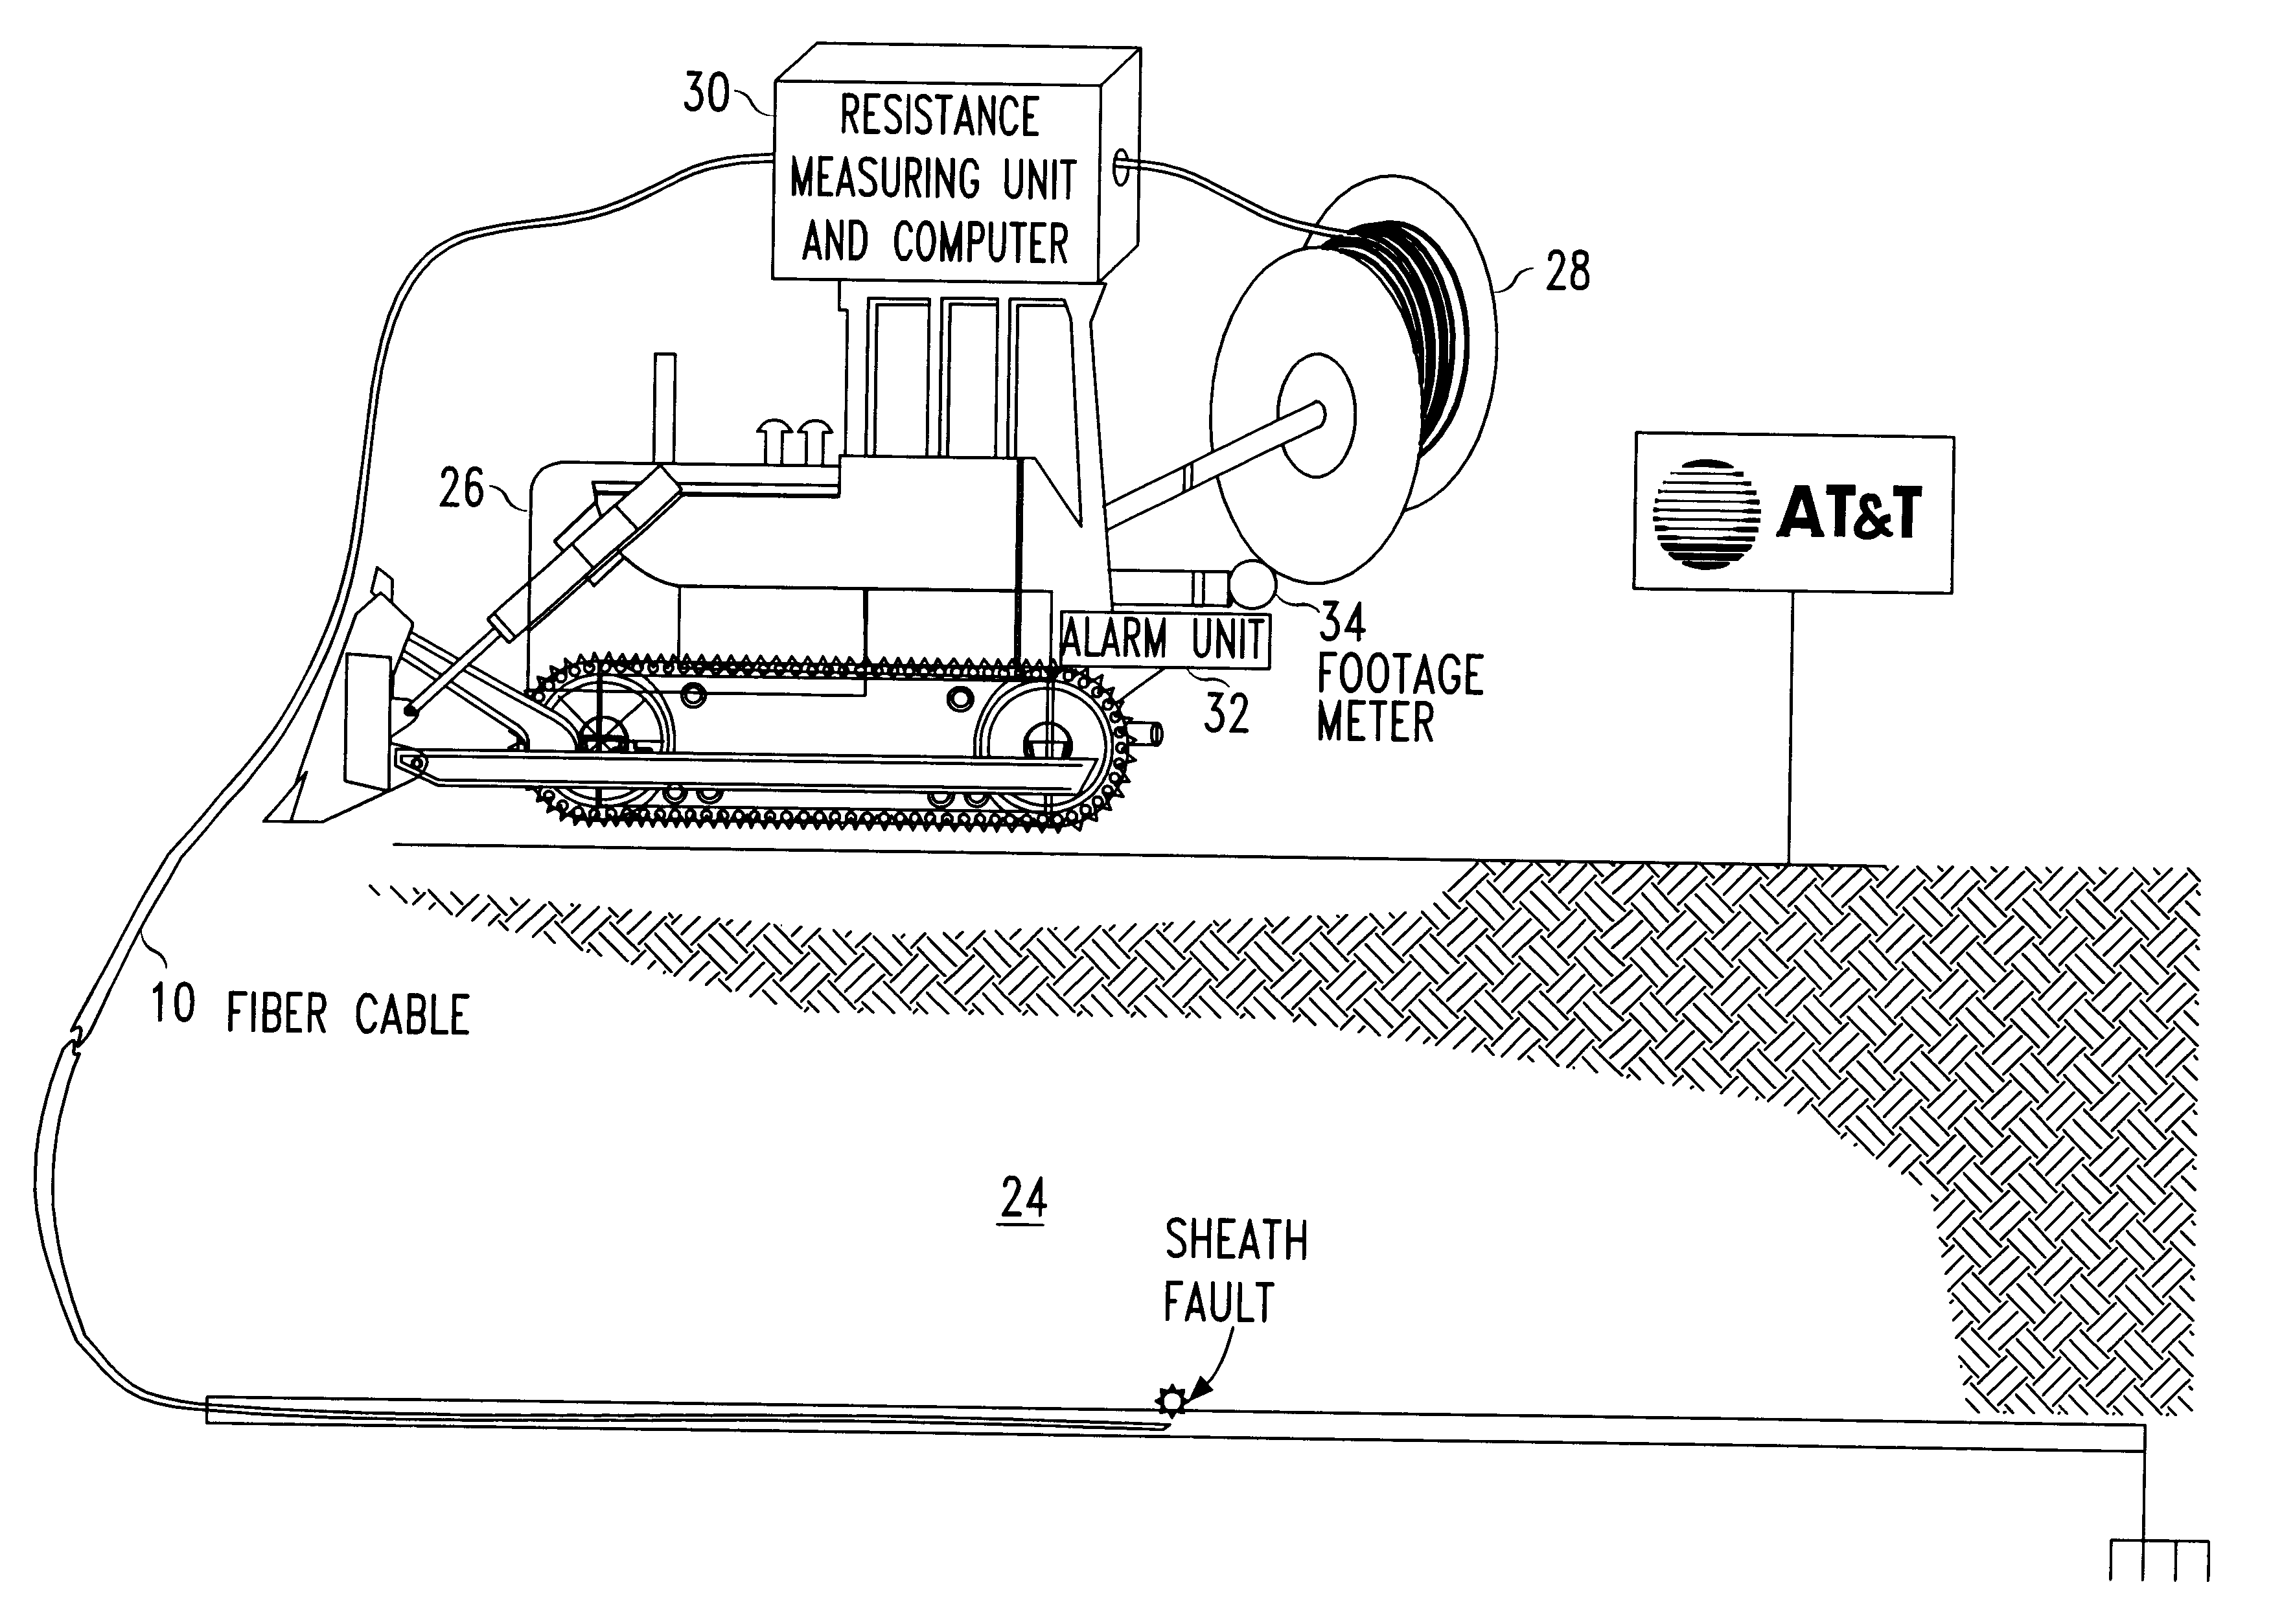 Apparatus And Method For Installing Cable : Patent us fiber optic cable installation method